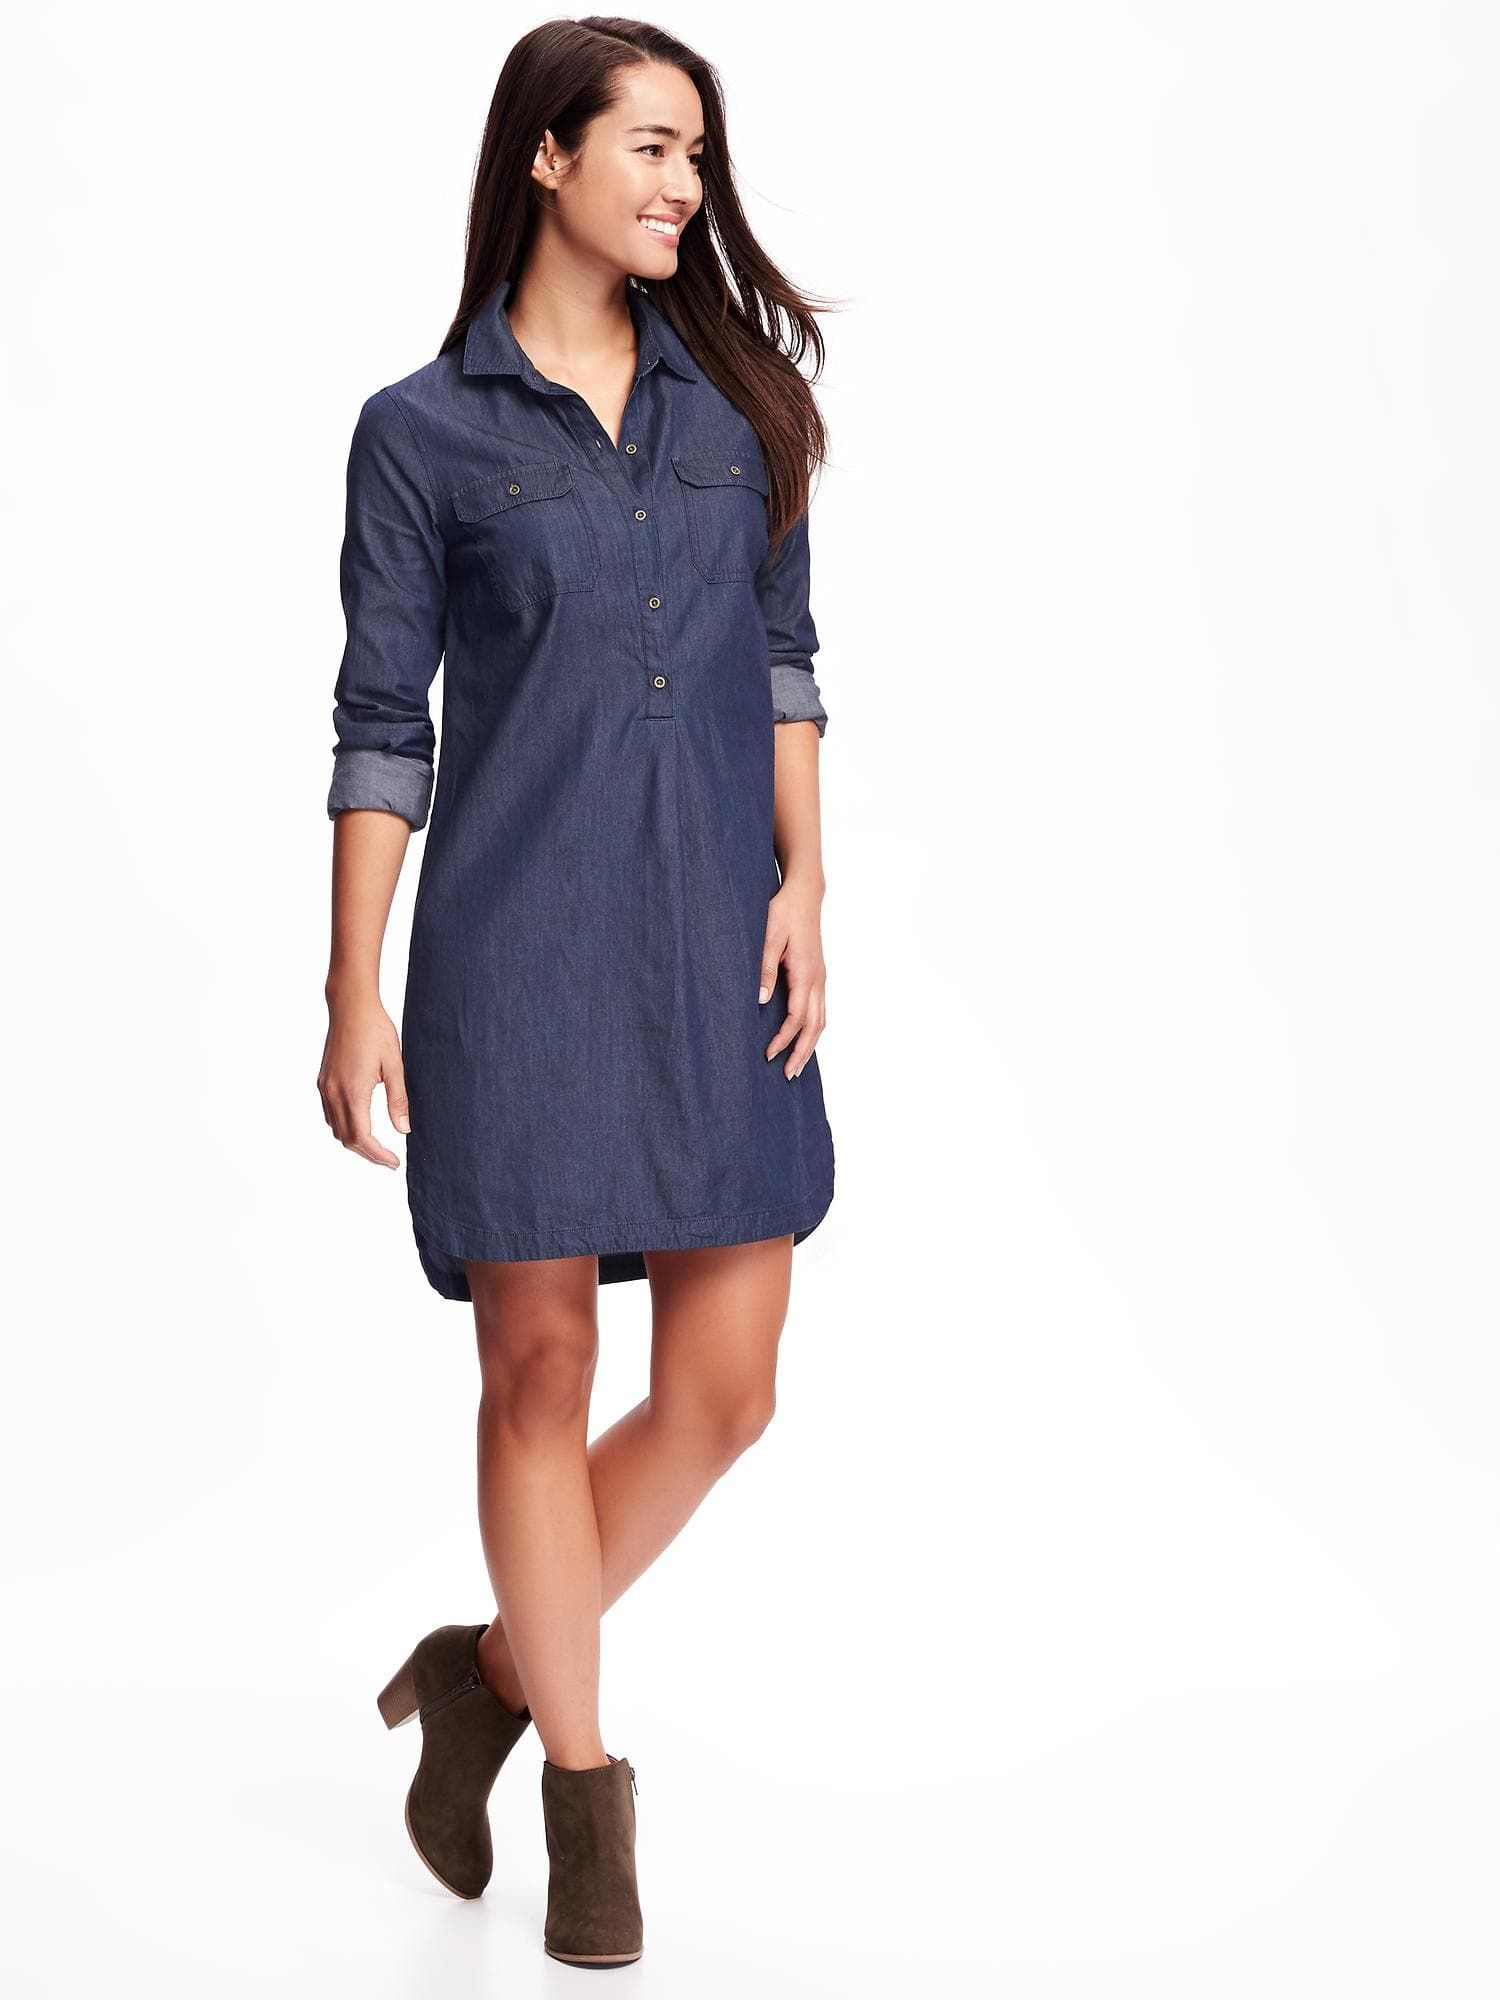 Chambray Shirt Dress For Women In 2018 Not Dressing My Truth Type